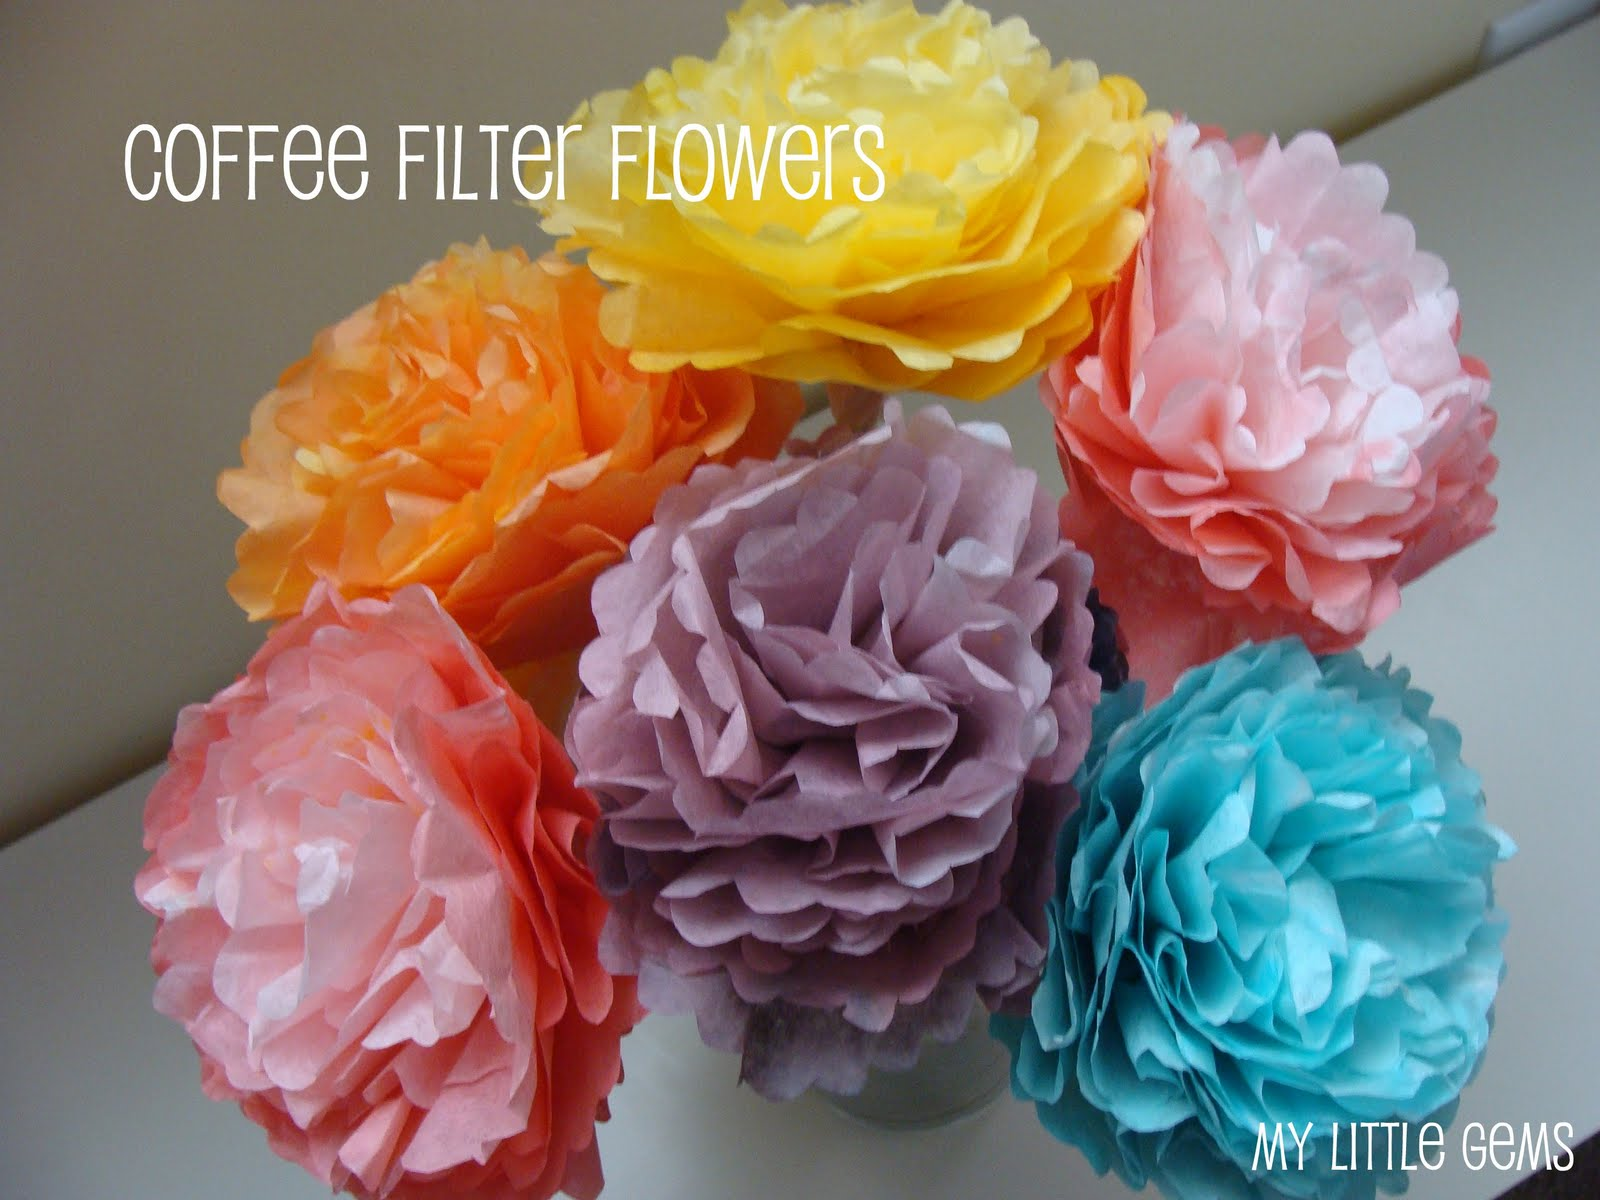 My Little Gems Coffee Filter Flowers and Banner